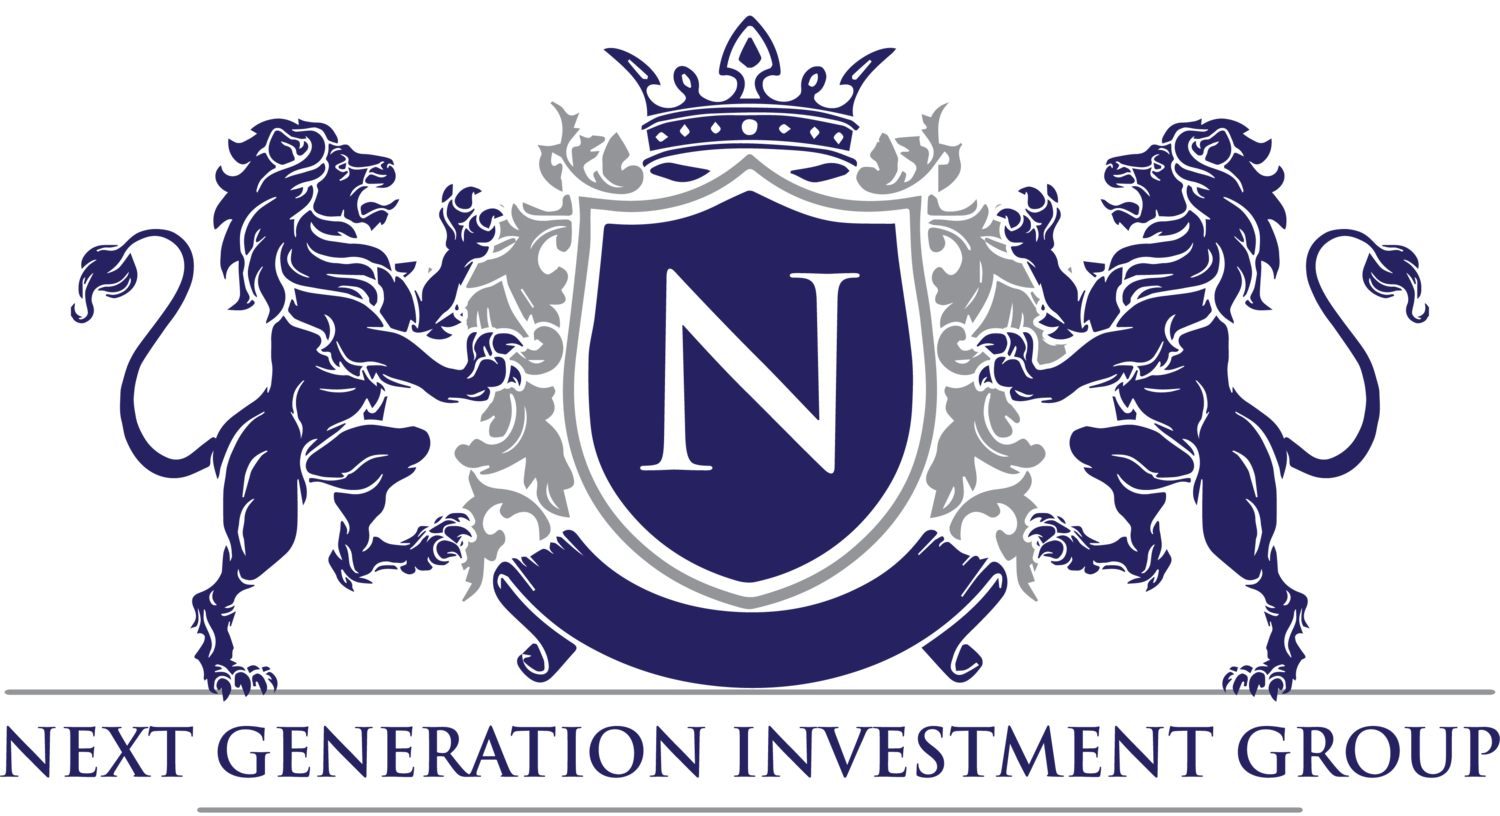 Next Generation Investment Group LLC